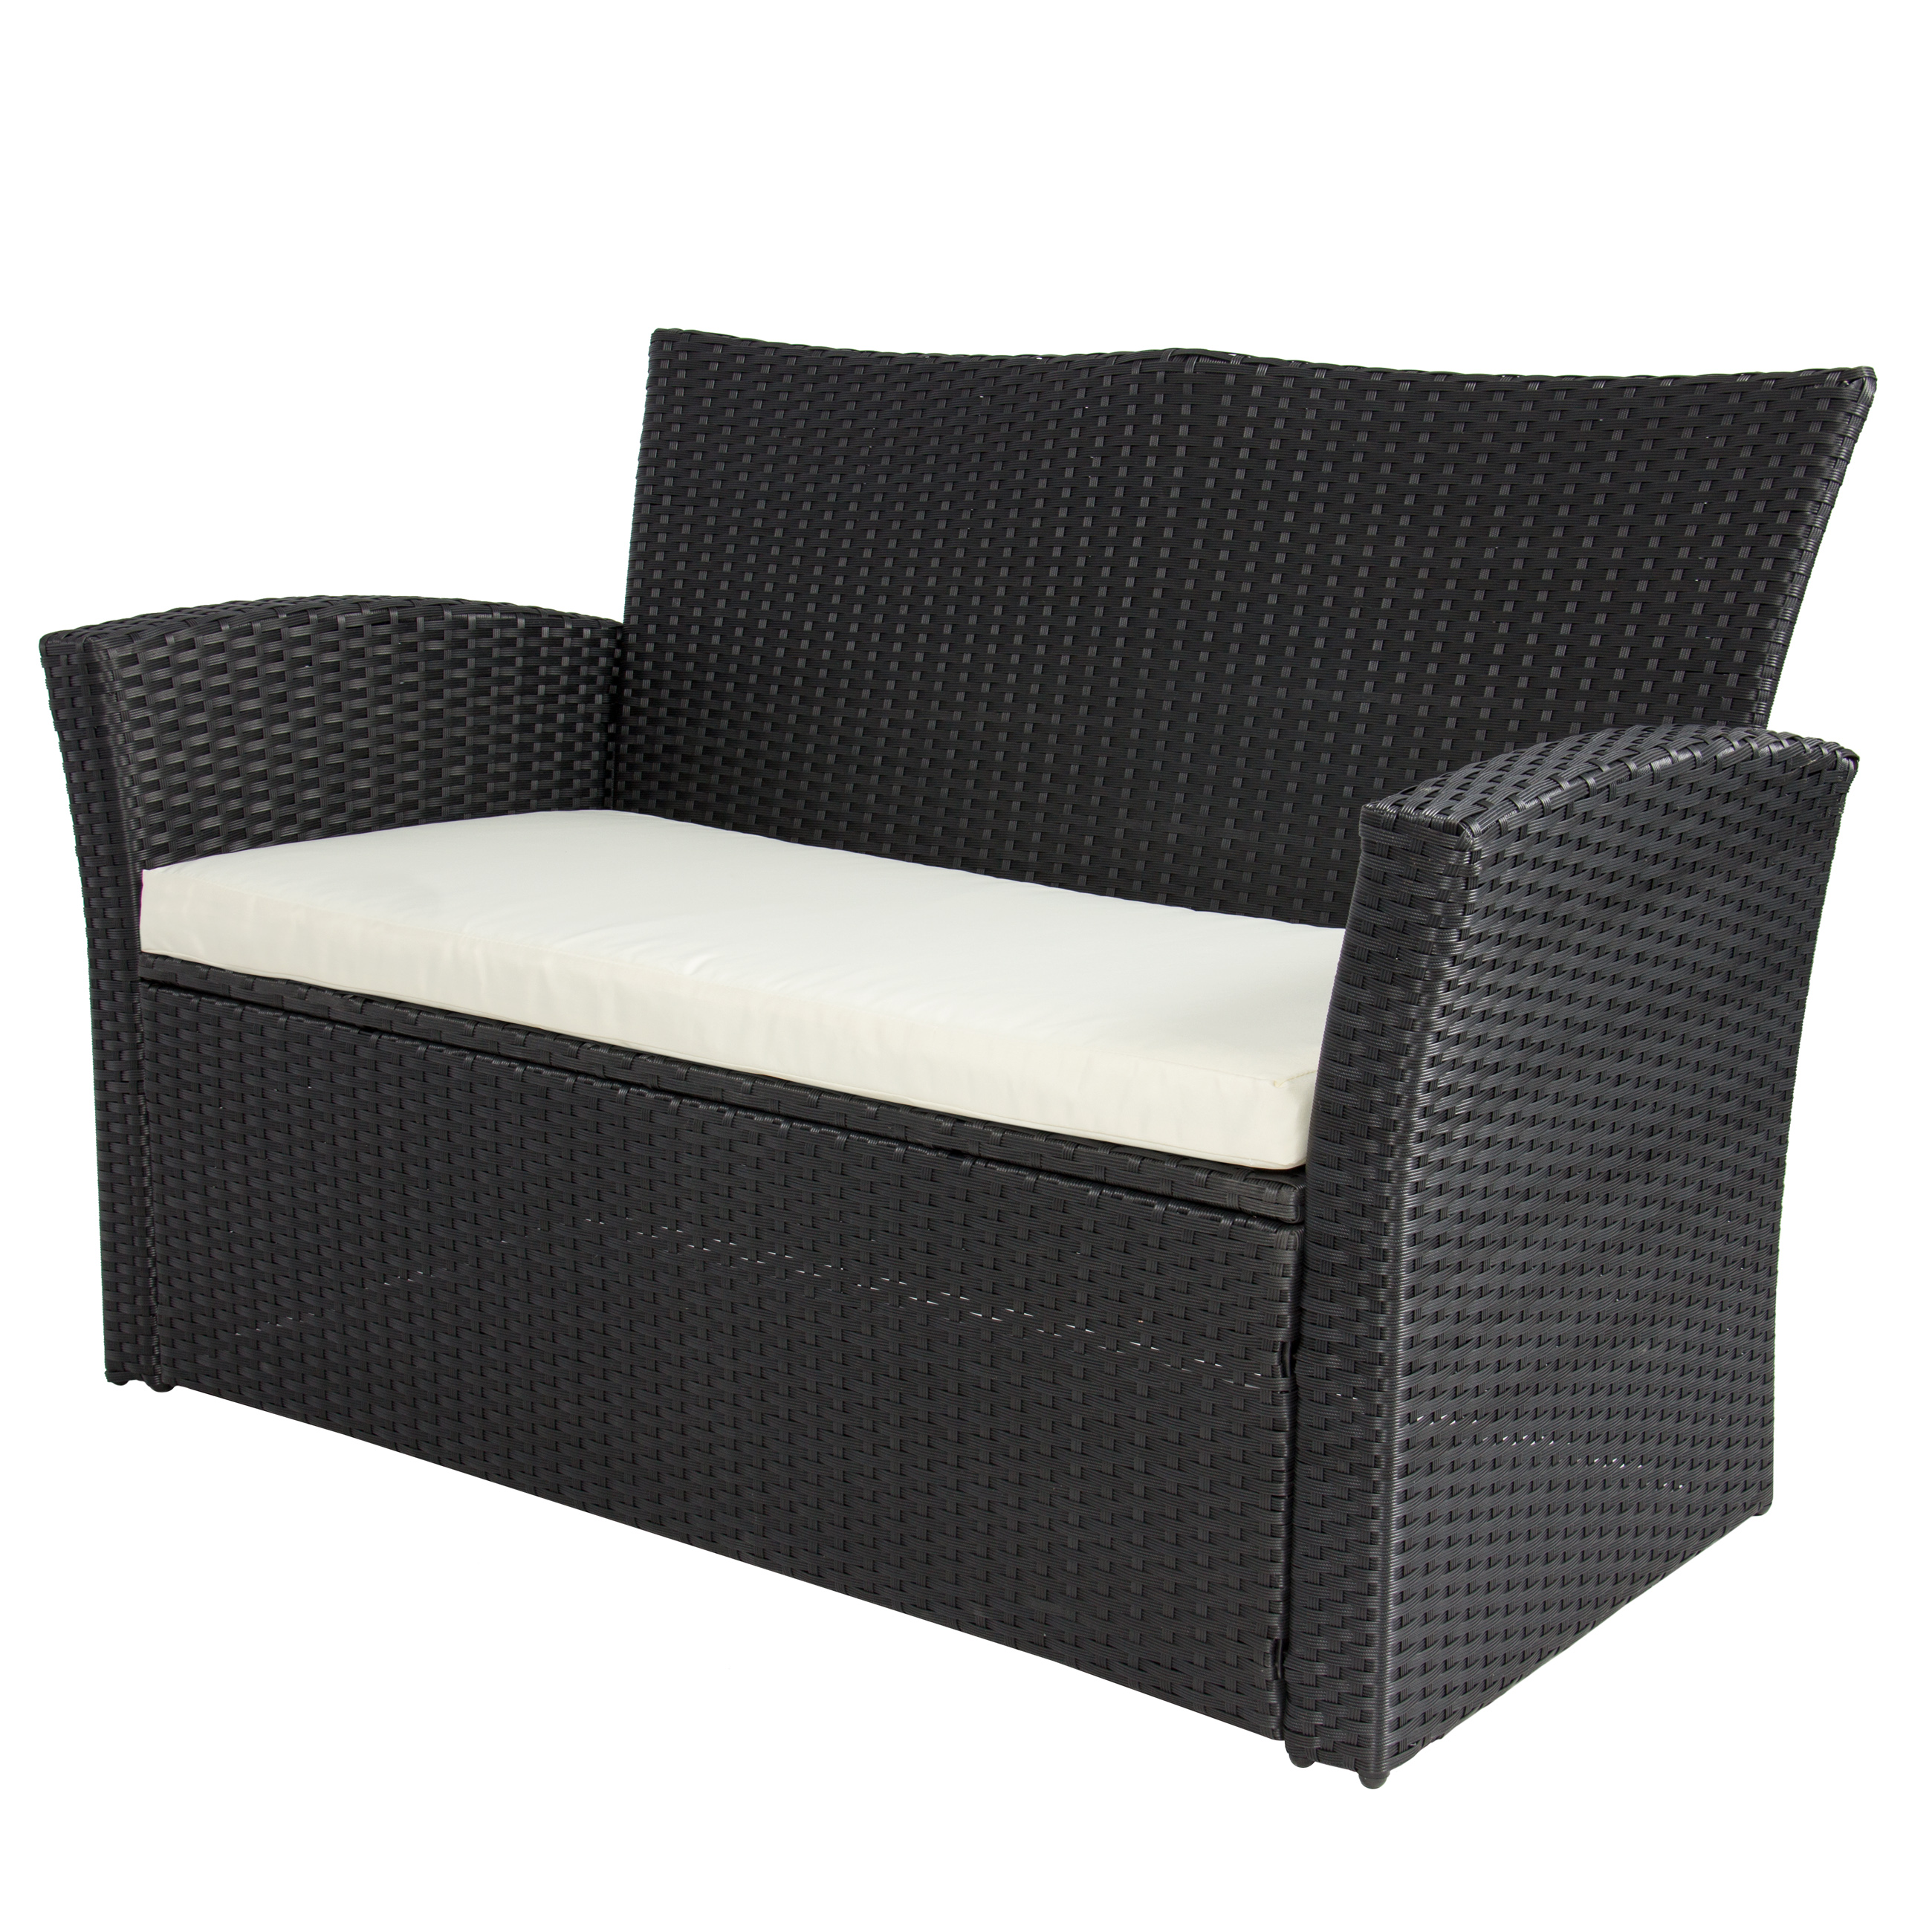 Garden Furniture Rattan 4pc outdoor patio garden furniture wicker rattan sofa set black